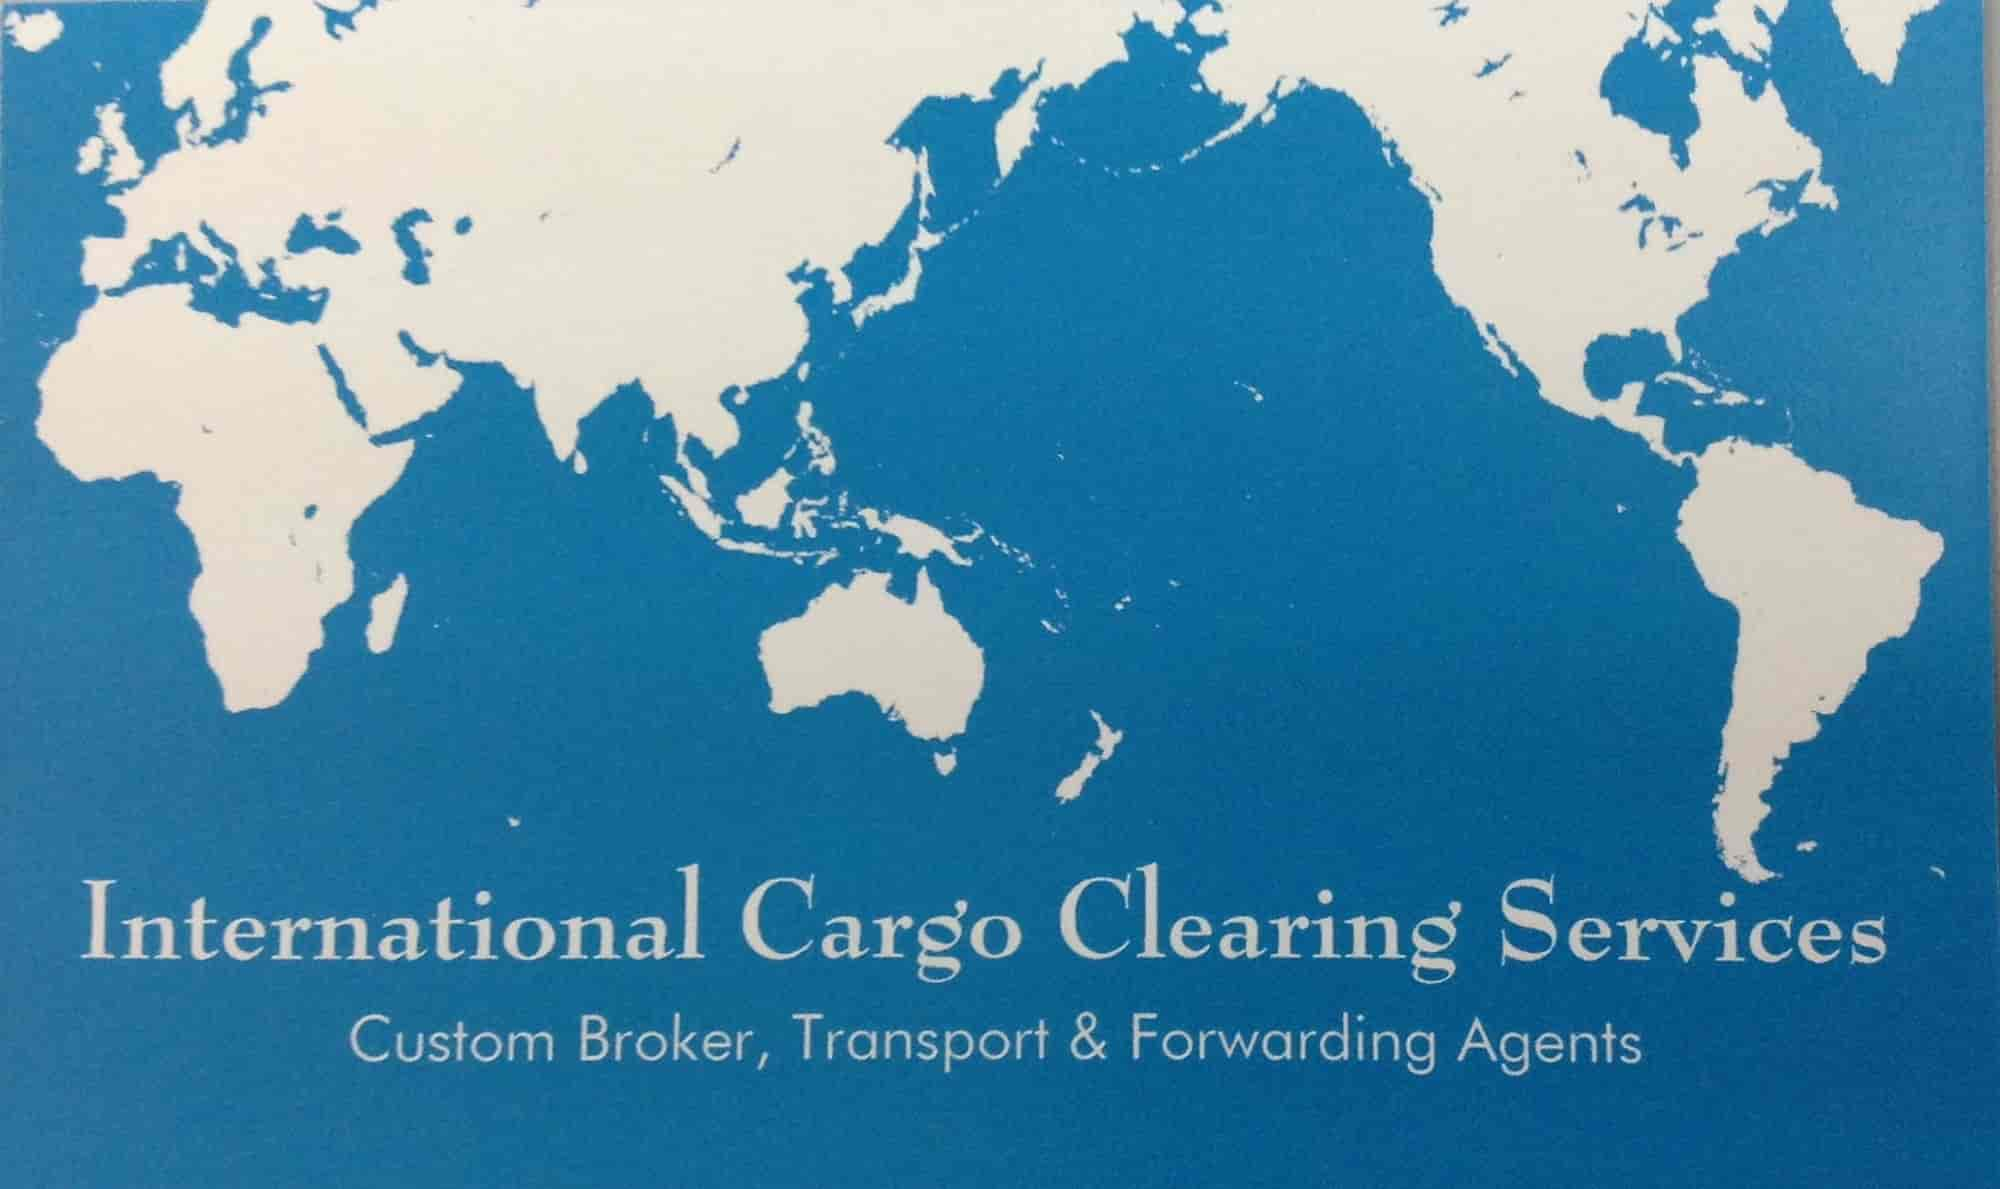 International Cargo Clearing Services, Focal Point - C&F Agent Air